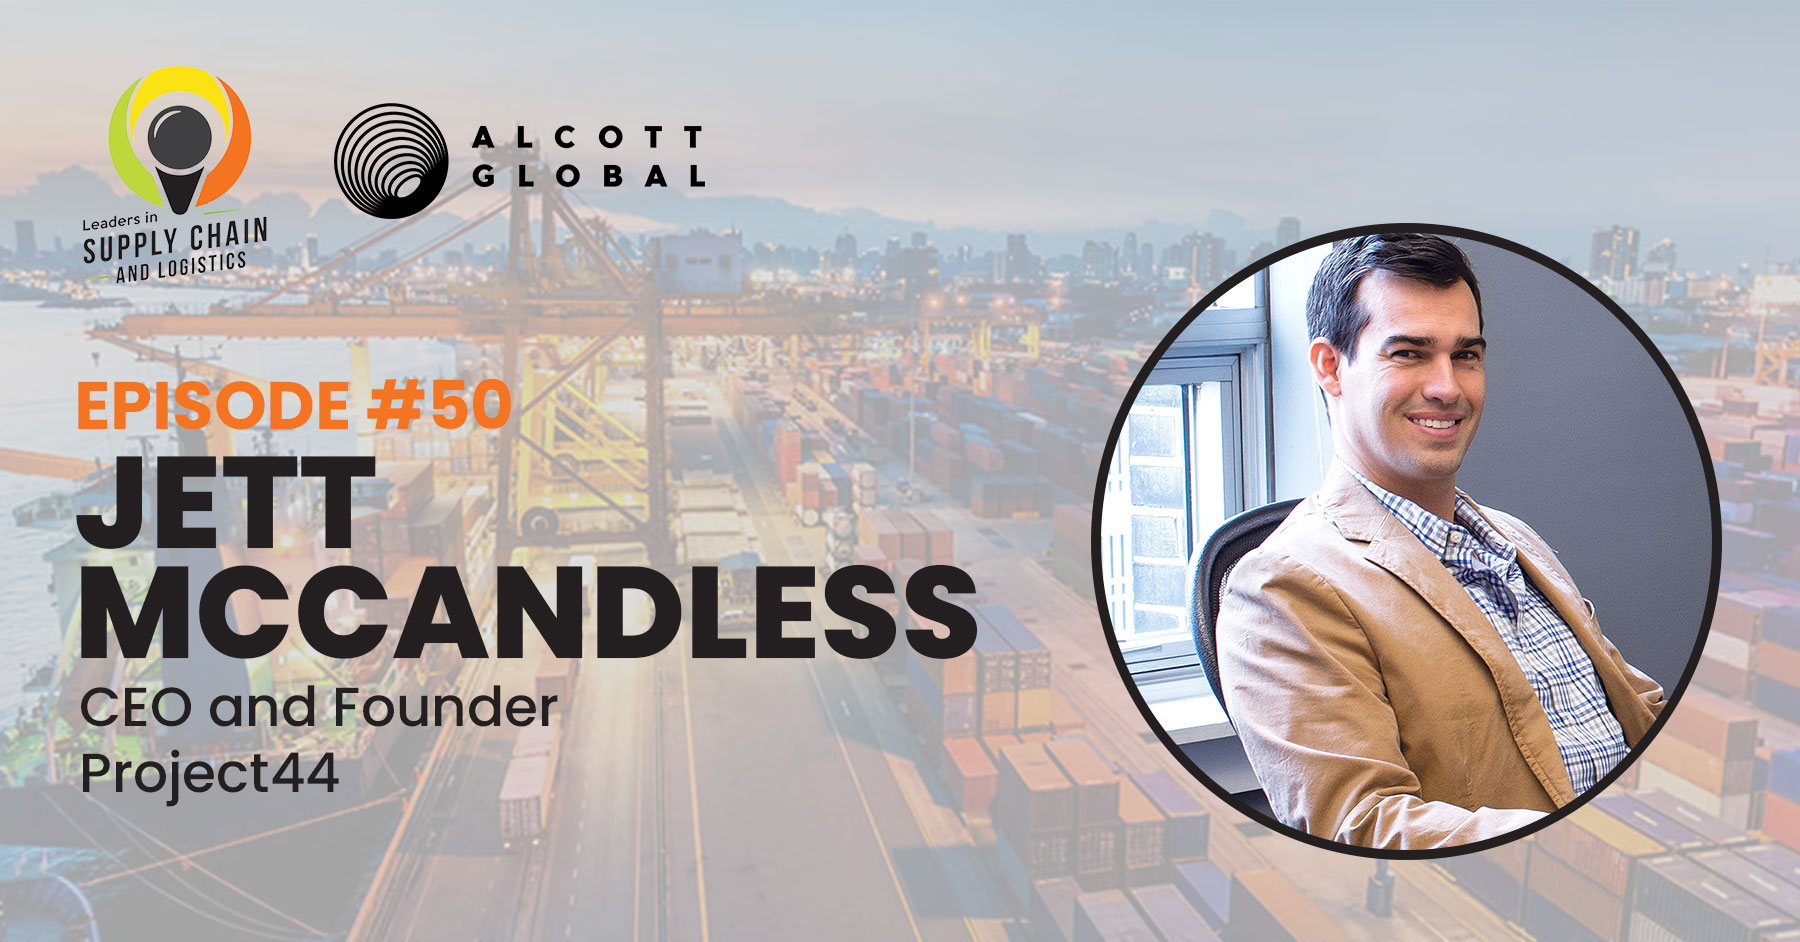 #50: Jett McCandless CEO and Founder of Project44